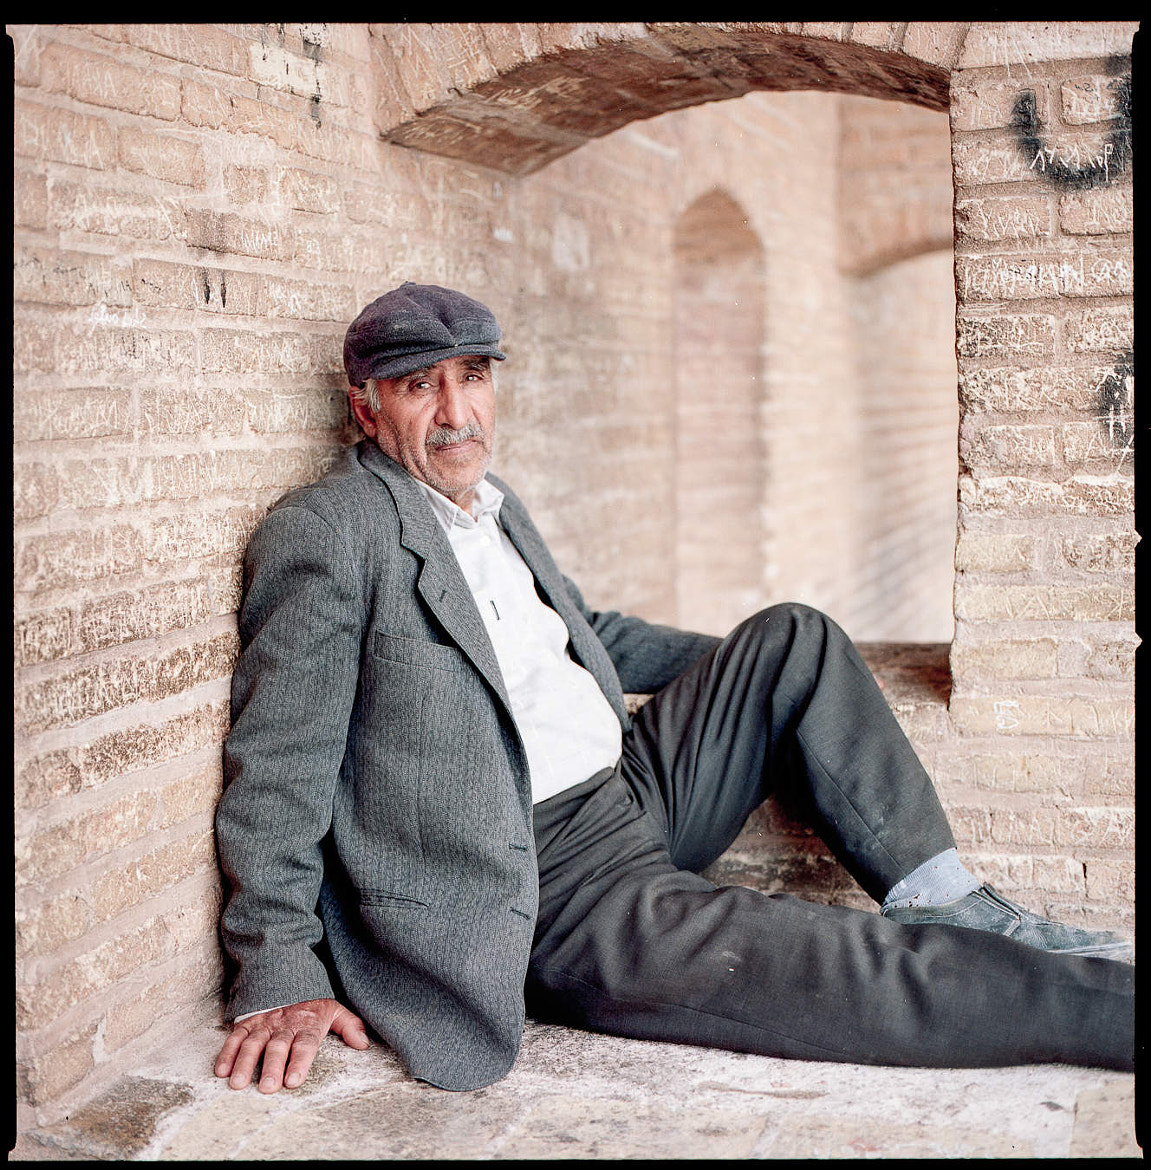 Photograph Resting, Isfahan, Iran by Chiaro Scurist on 500px